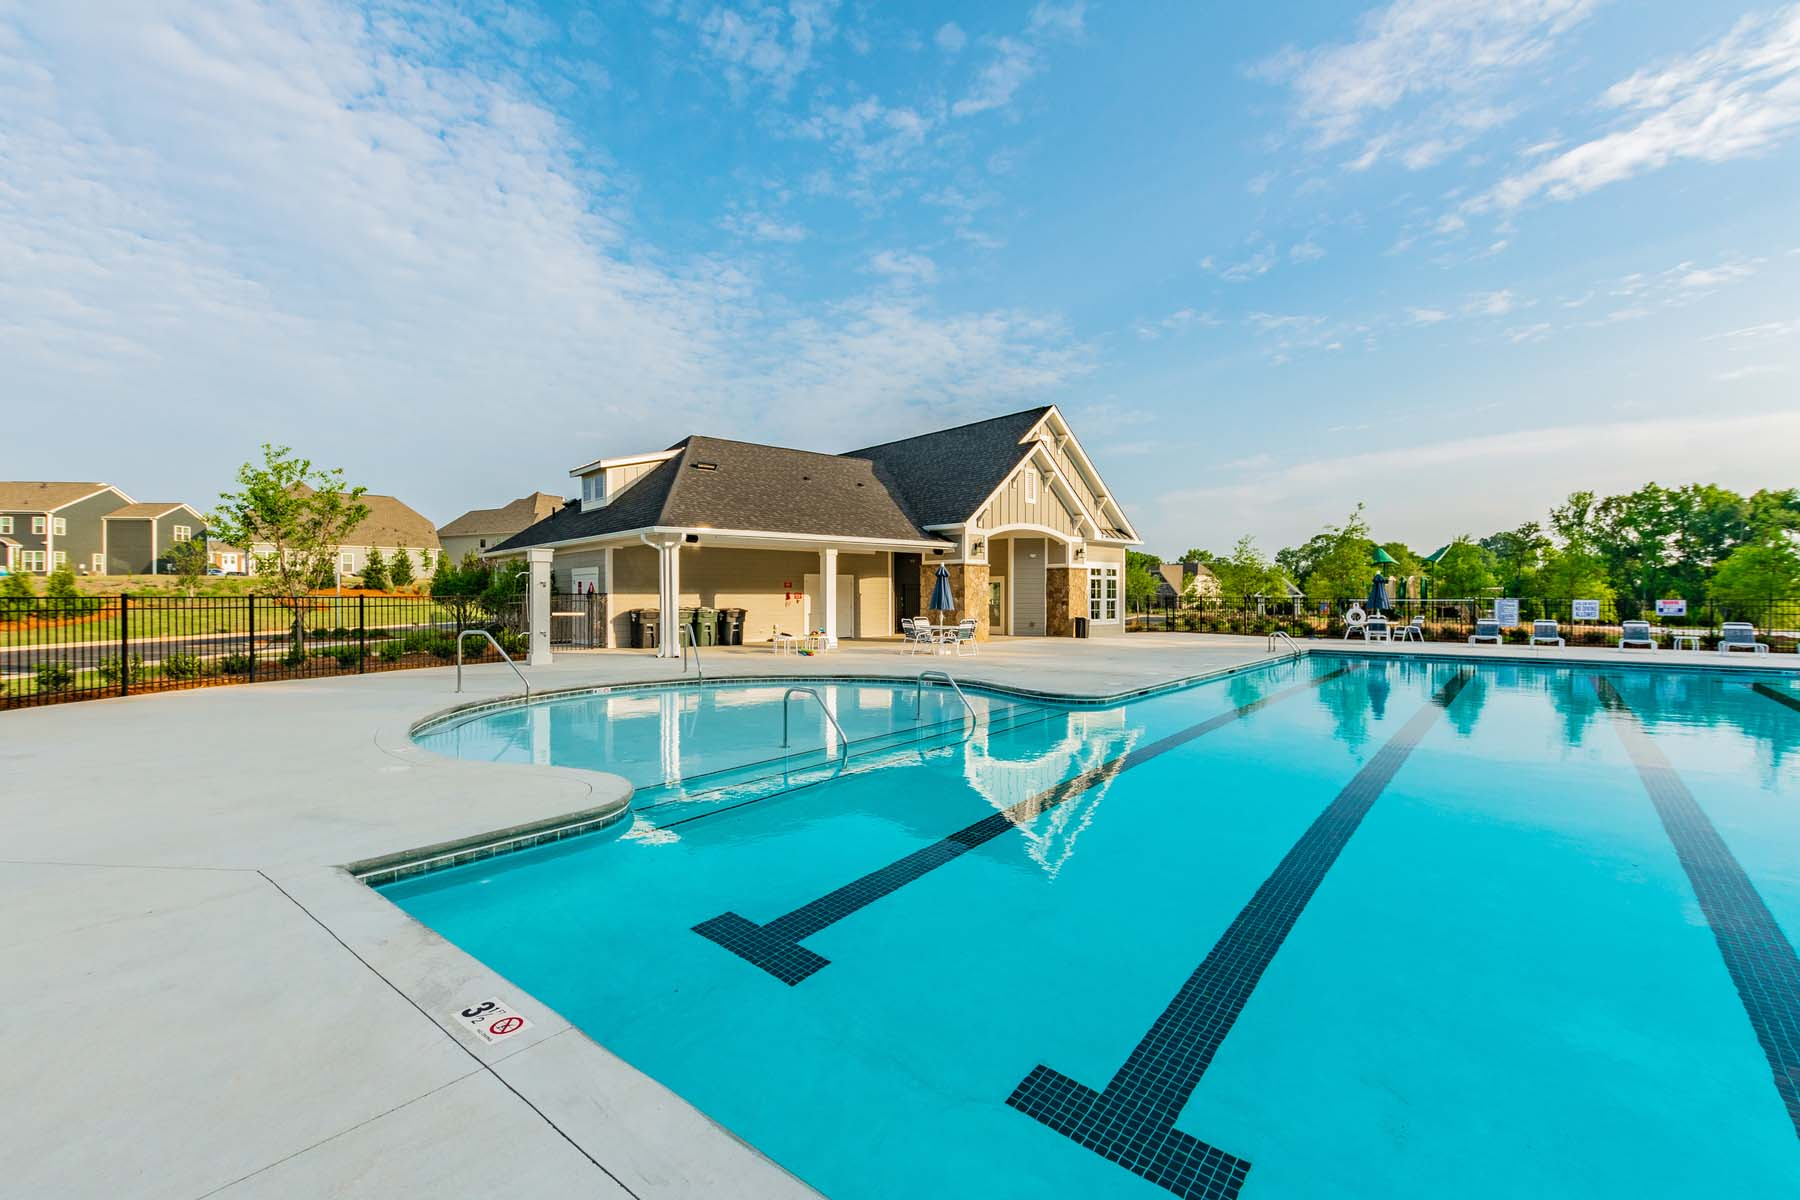 New Homes for Sale in Concord, NC | Allen Mills